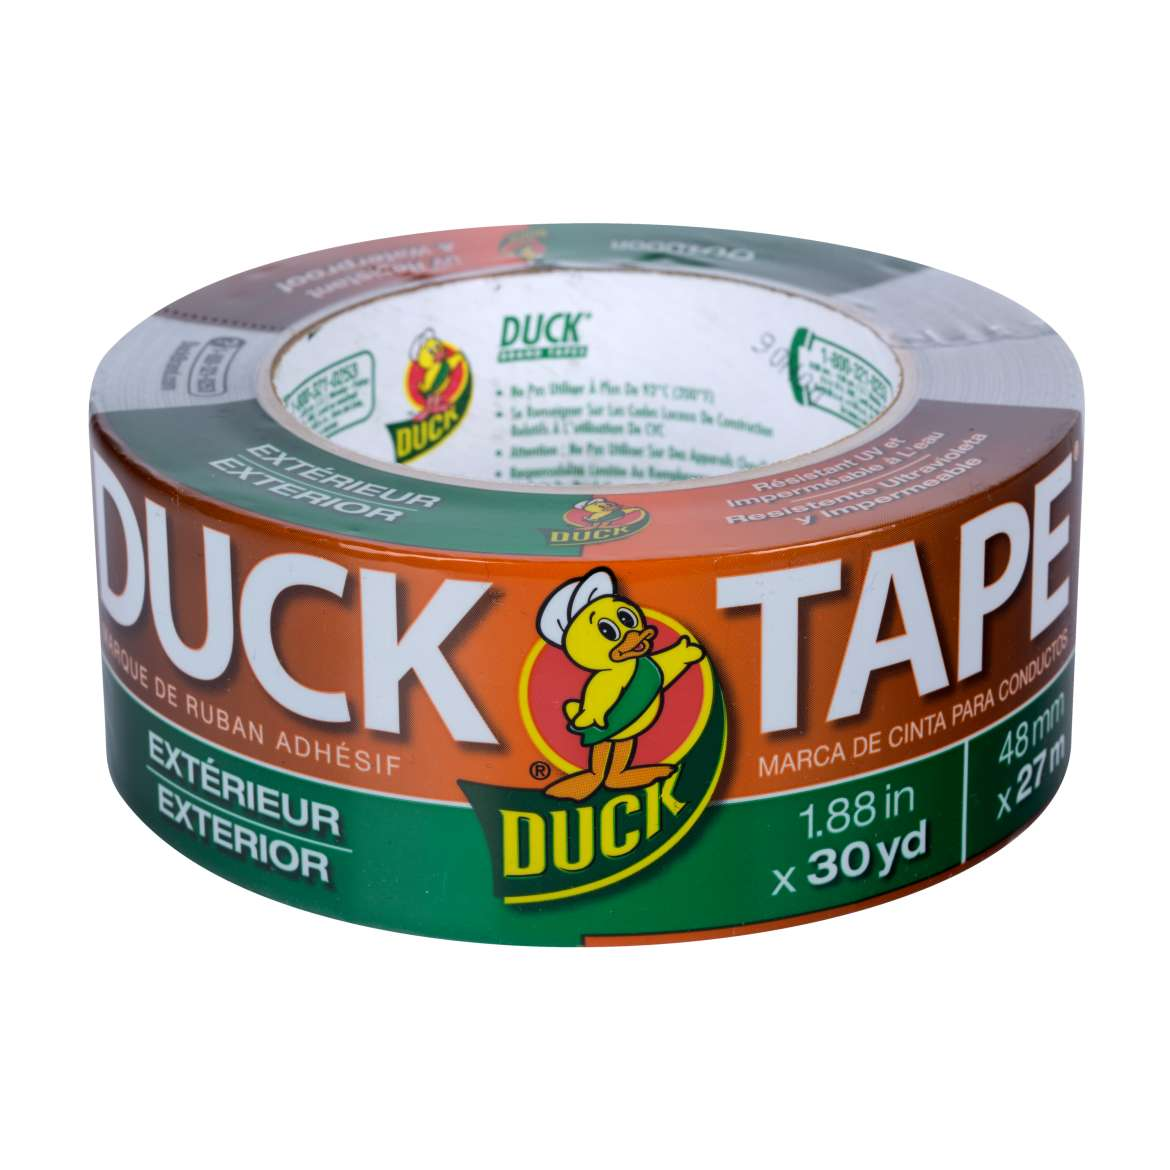 Outdoor Duck Tape® Brand Duct Tape - Silver, 1.88 in. x 30 yd. Image